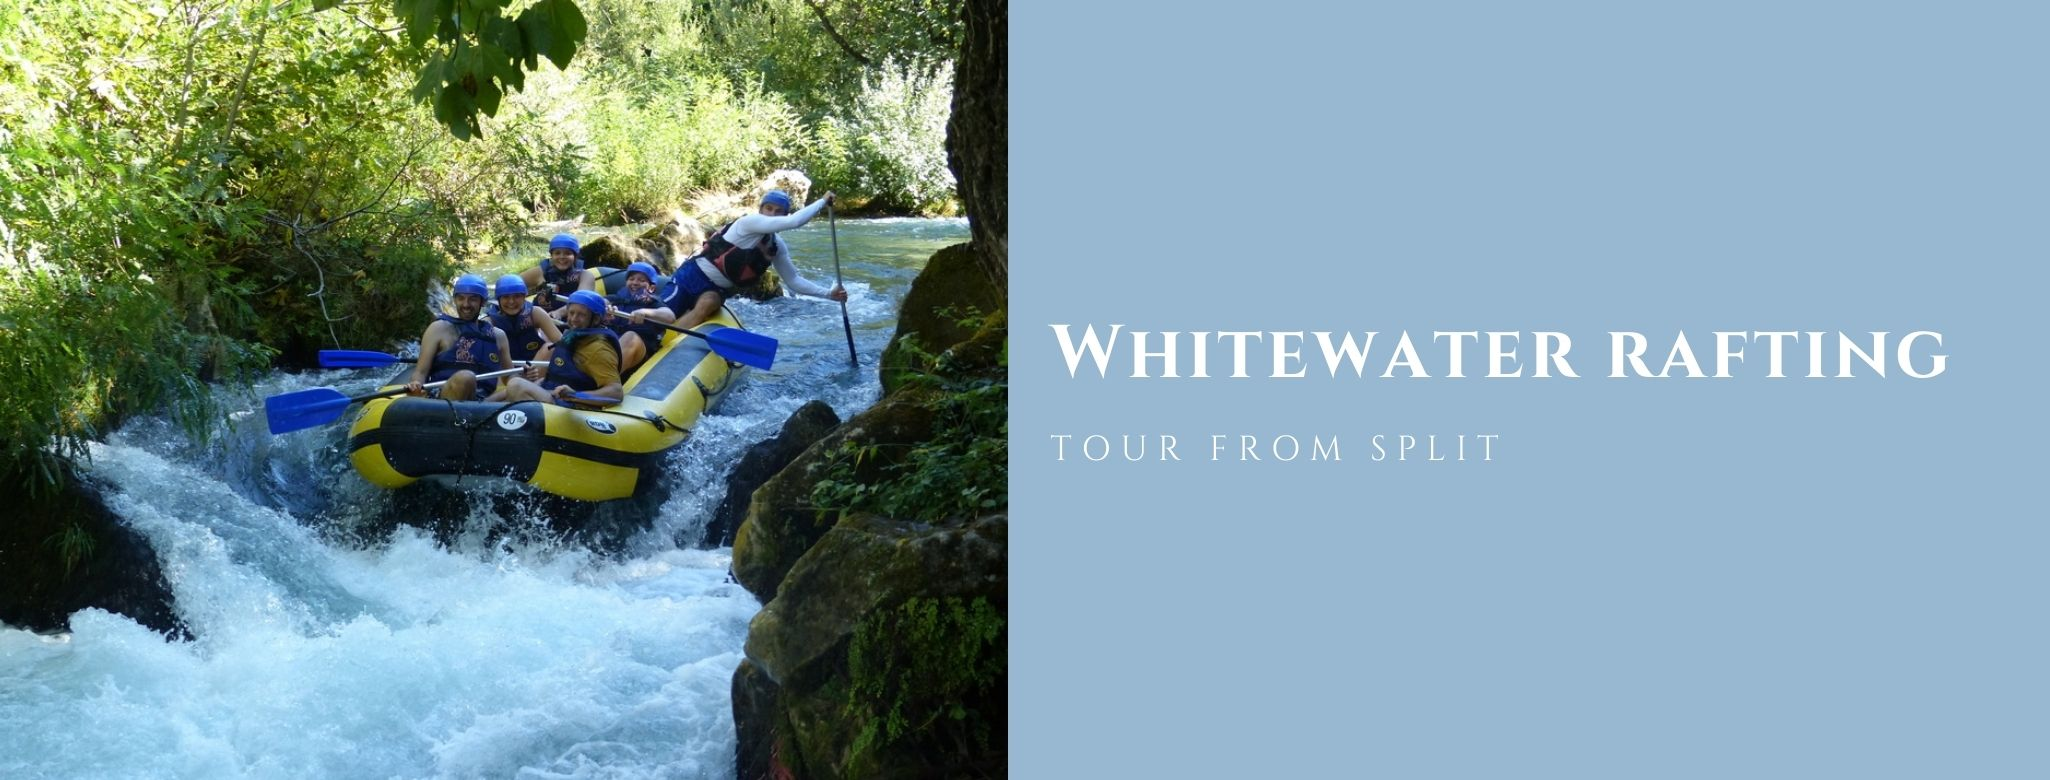 Whitewater rafting title